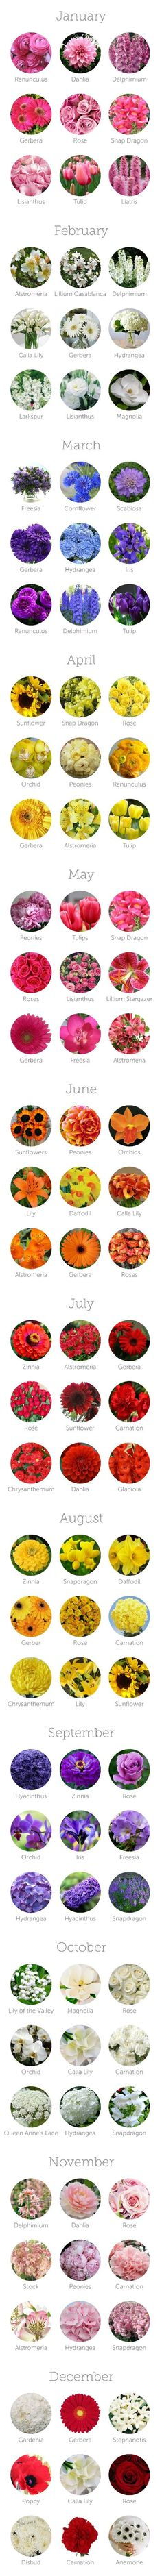 Wedding Flowers Available By Season / http://www.deerpearlflowers.com/wedding-planning-tips-for-wedding-flowers/3/